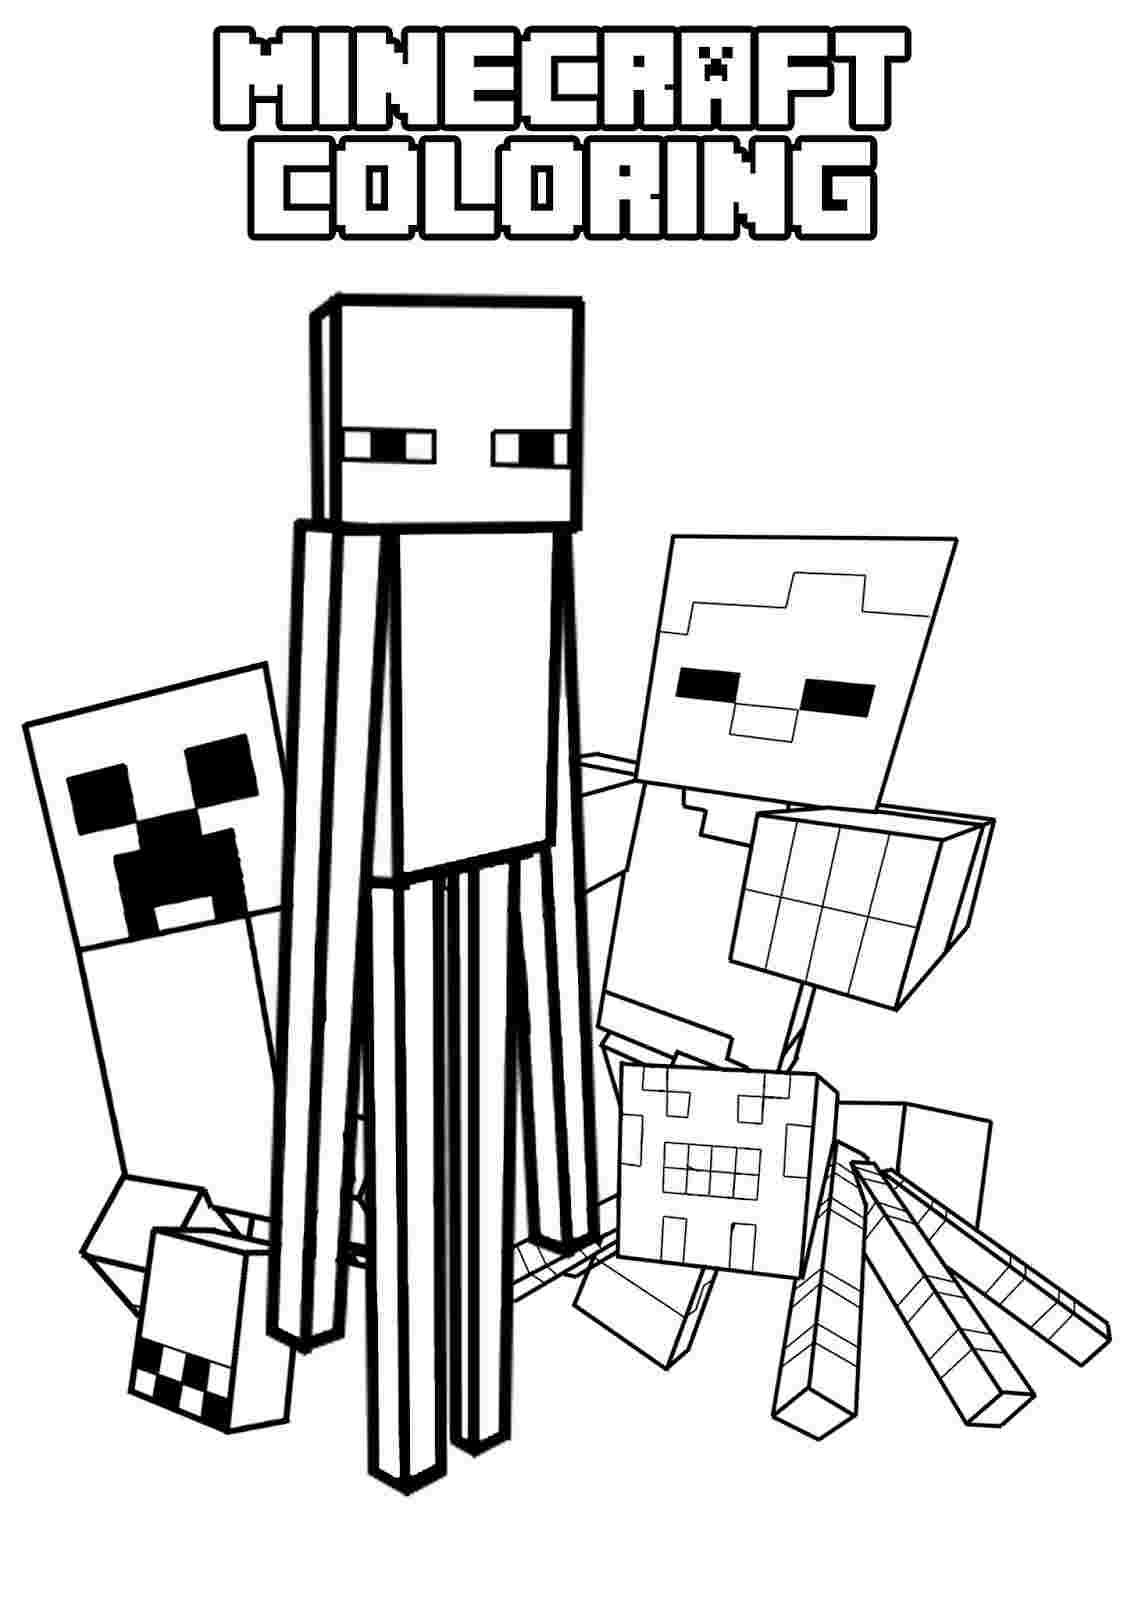 creeper coloring pages minecraft creeper coloring pages printable at getdrawings creeper coloring pages